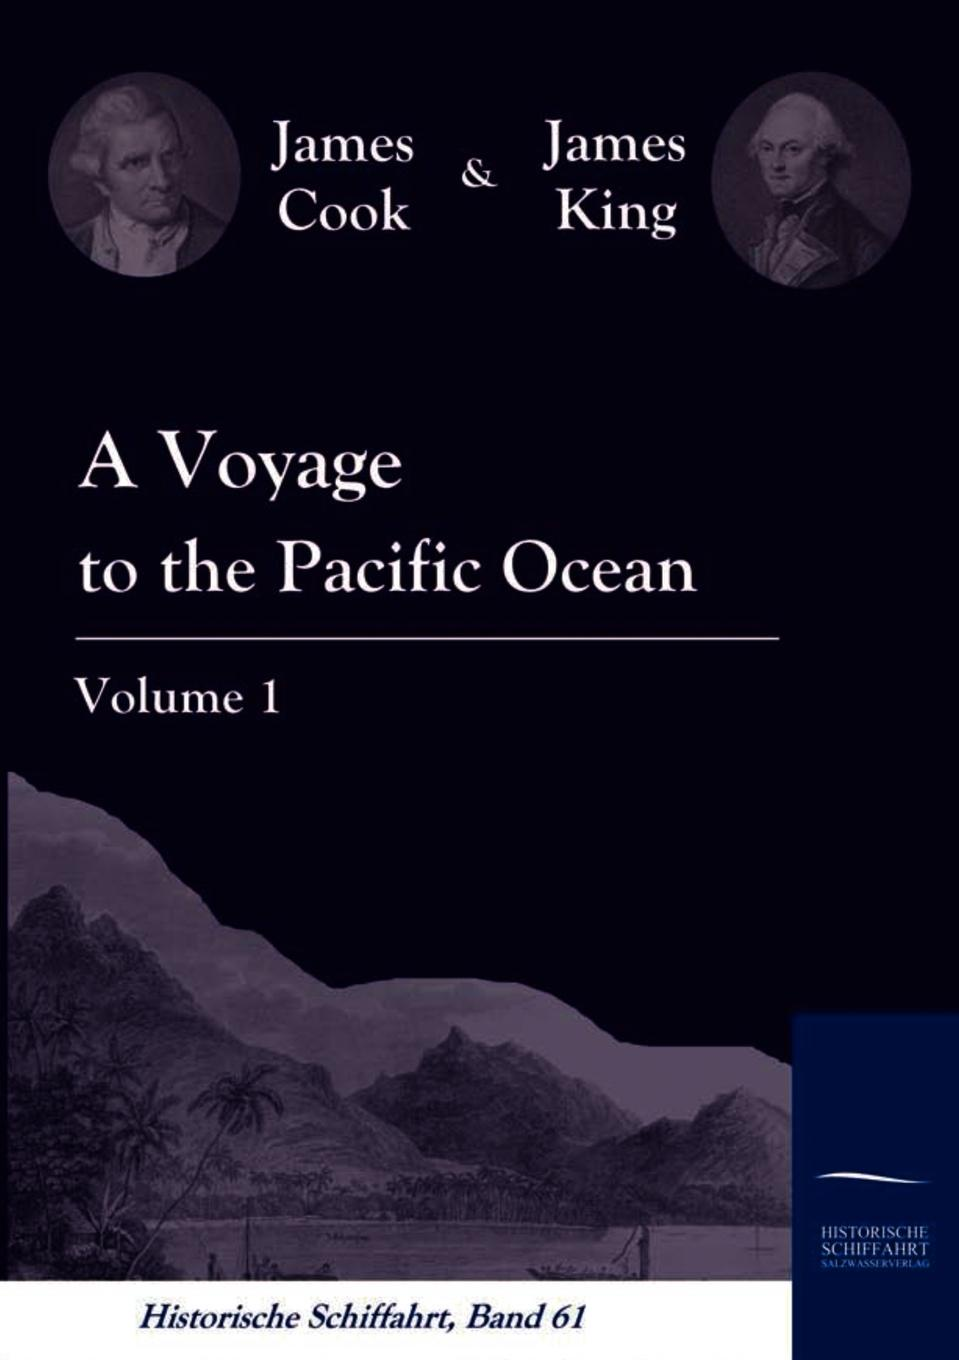 James King, James Cook A Voyage to the Pacific Ocean Vol. 1